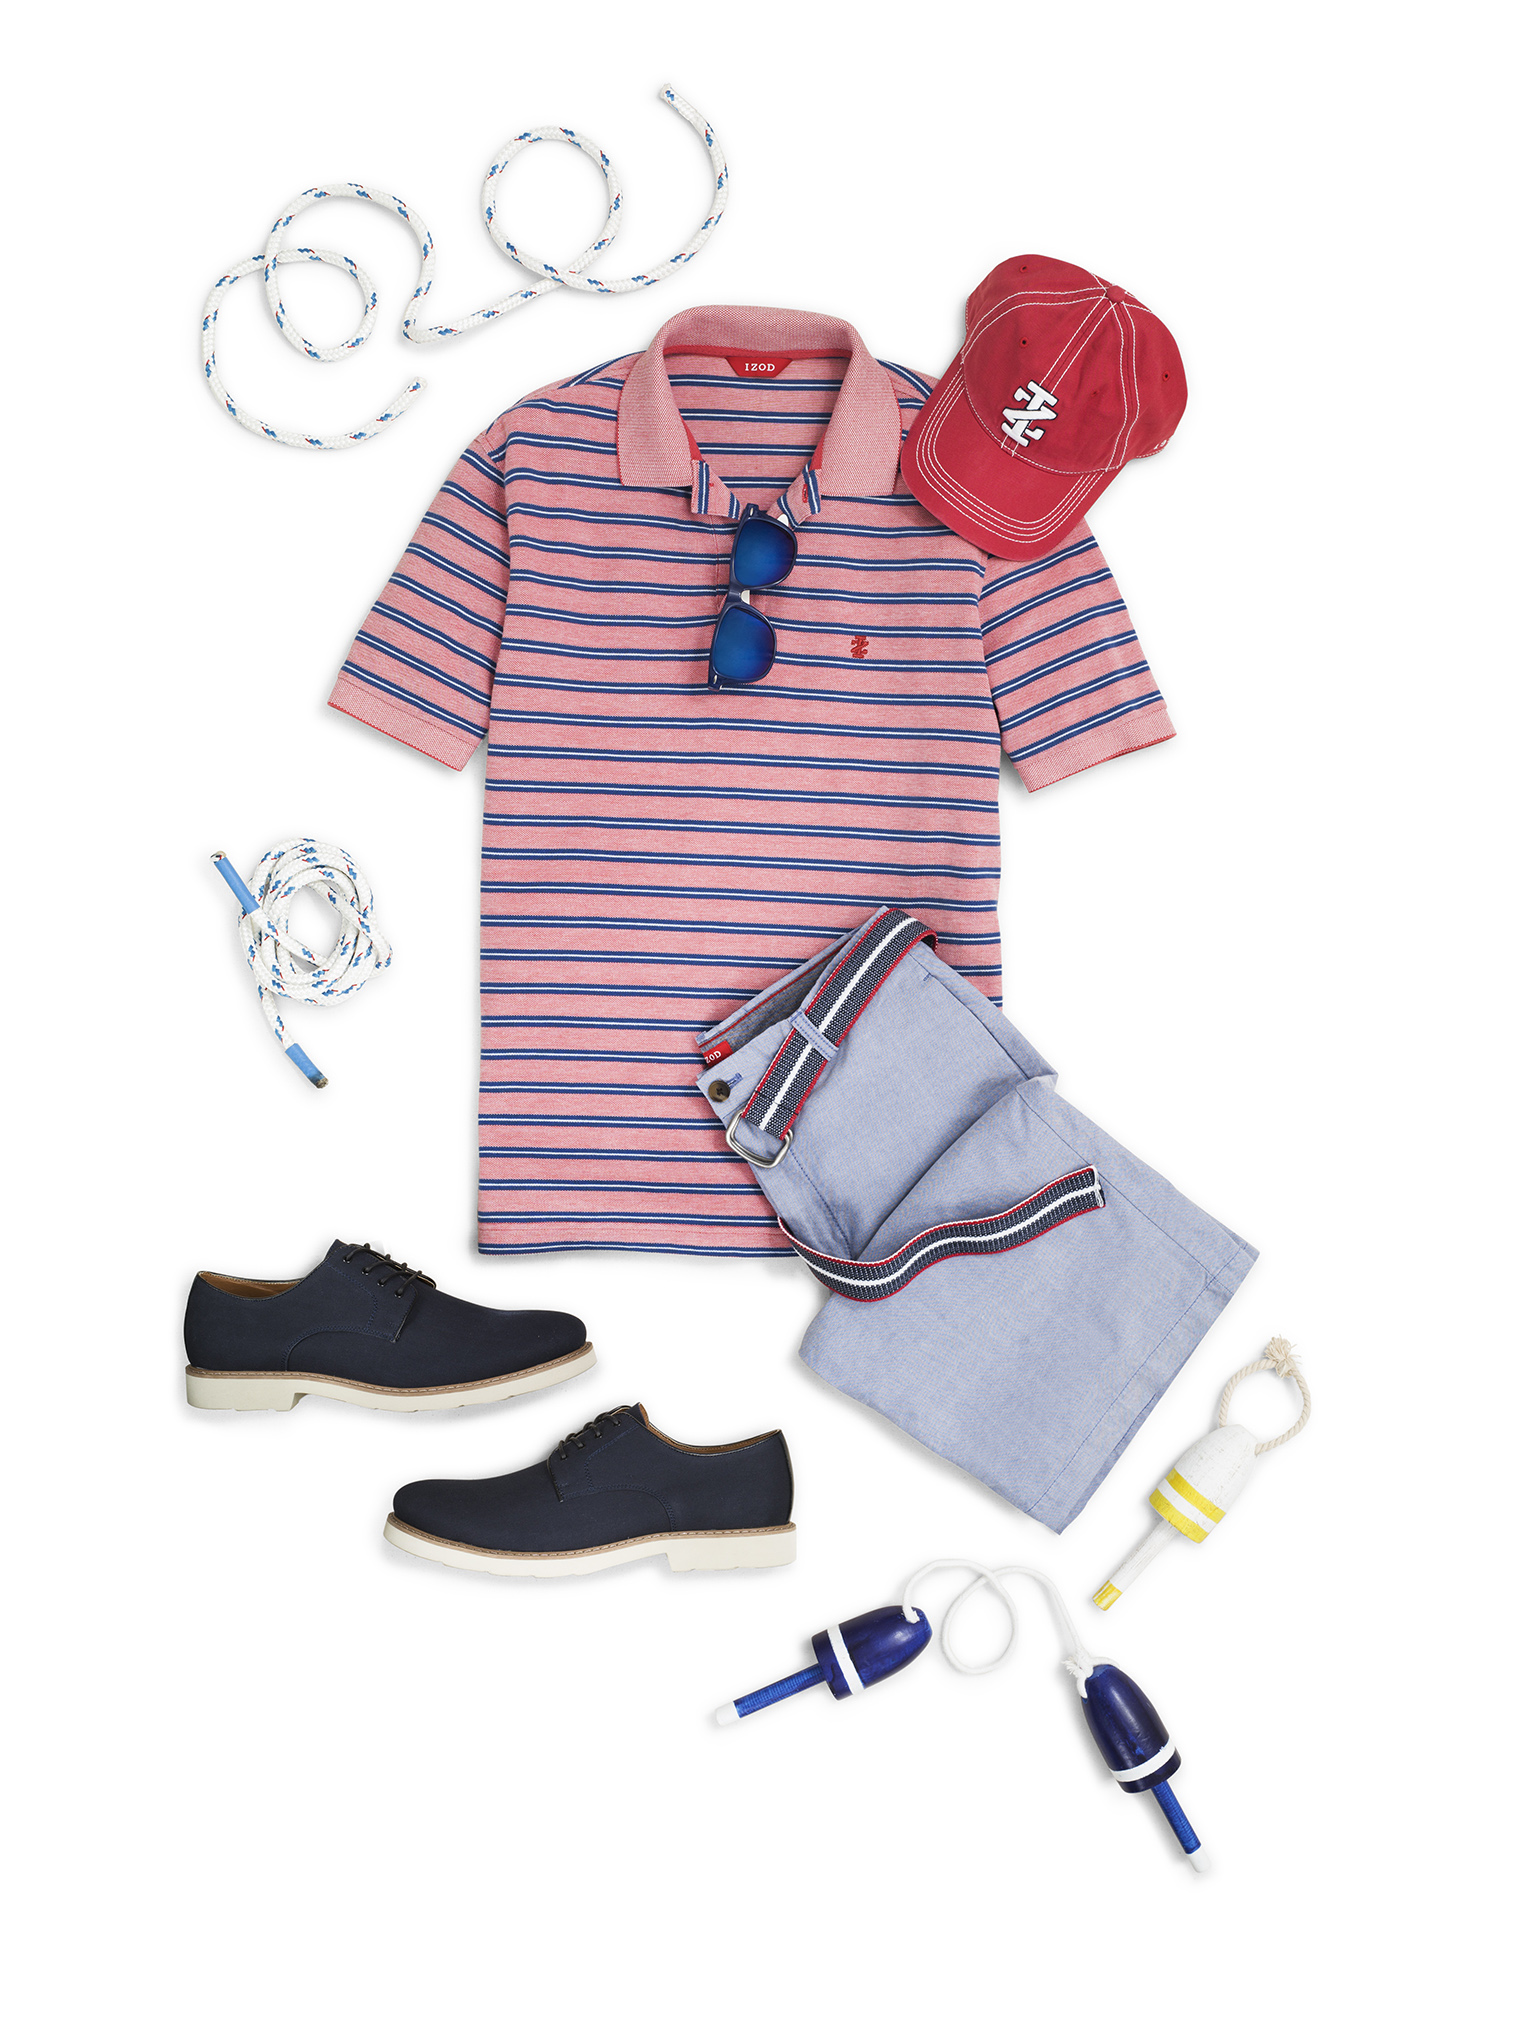 IZOD_Oxford_Polo_Short_Look_fnl copy